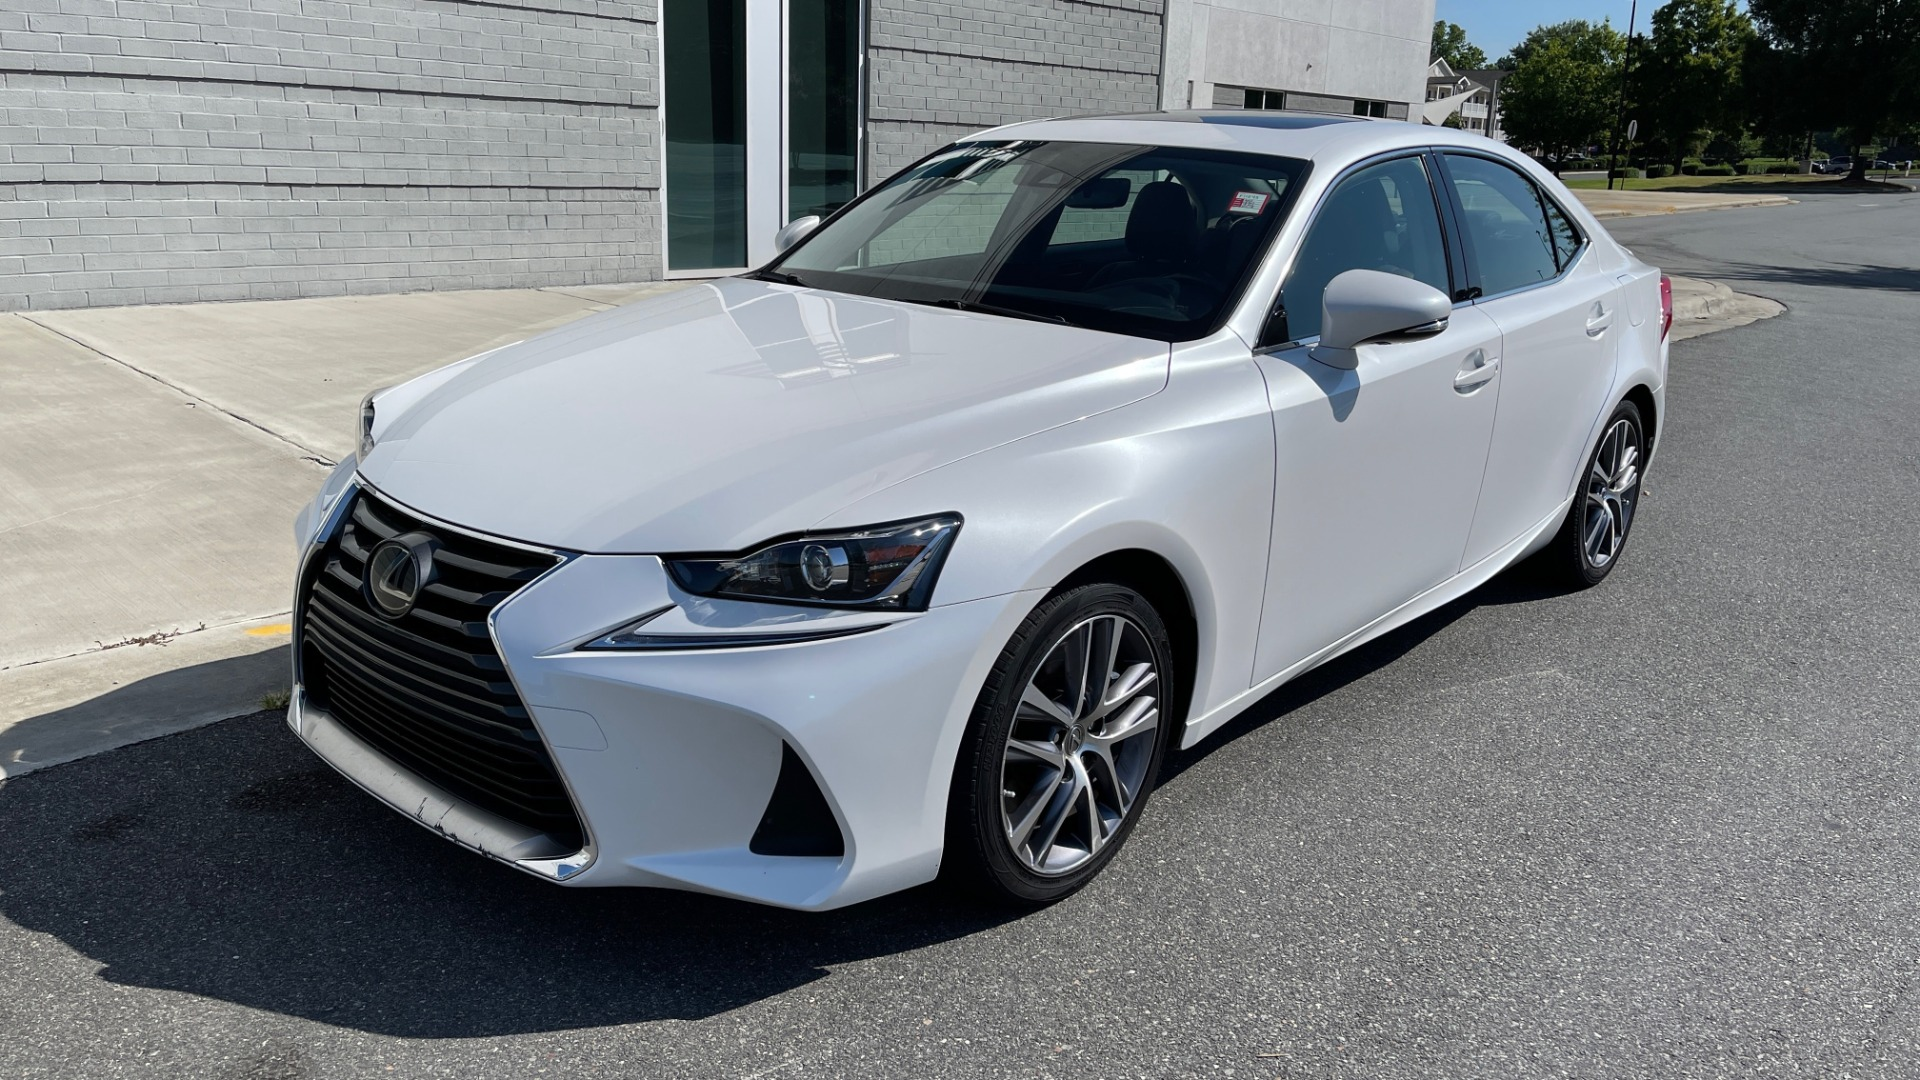 Used 2018 Lexus IS 300 / 2.0L TURBO / 8-SPD AUTO / SUNROOF / REARVIEW for sale $29,495 at Formula Imports in Charlotte NC 28227 3